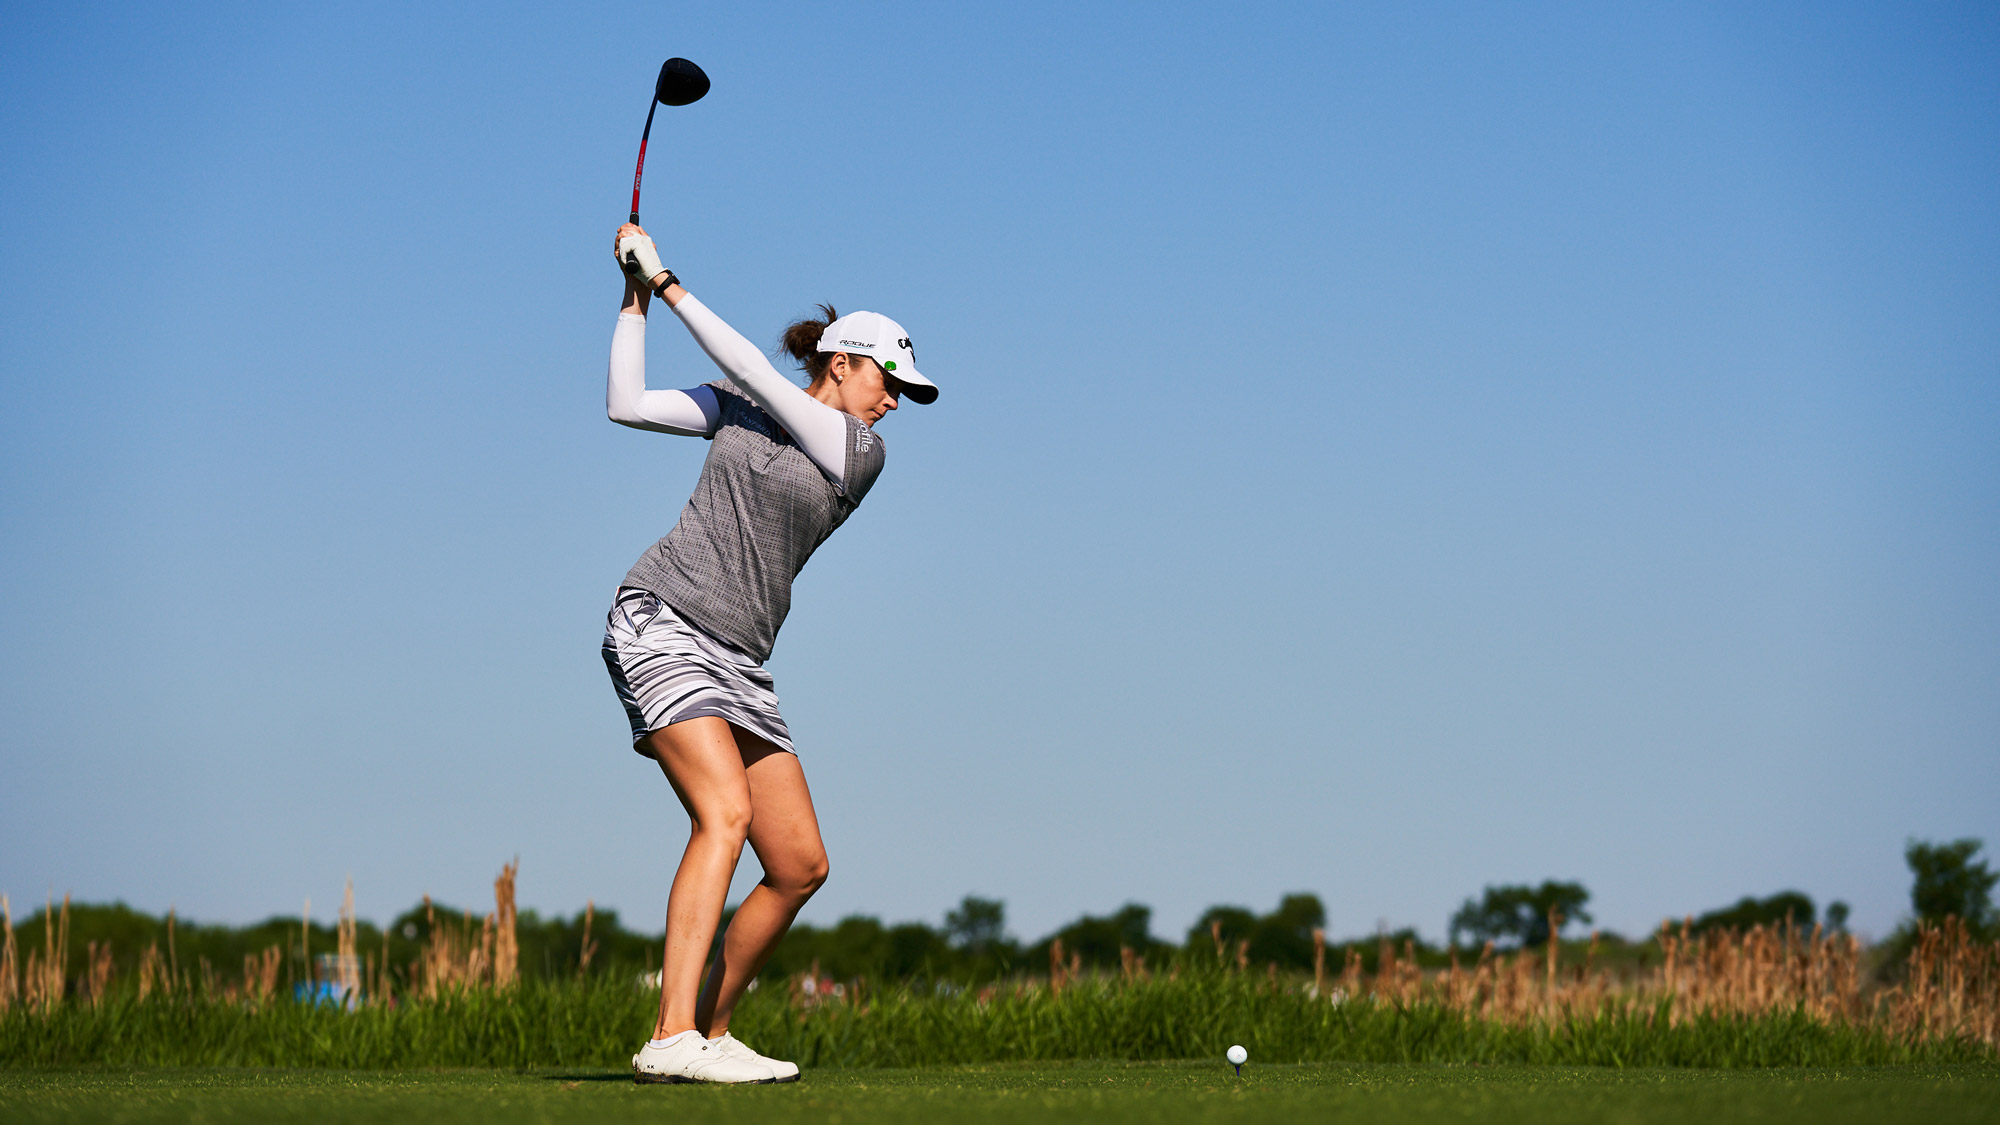 Kim Kaufman Loads Up Her Swing at VOA LPGA Texas Classic